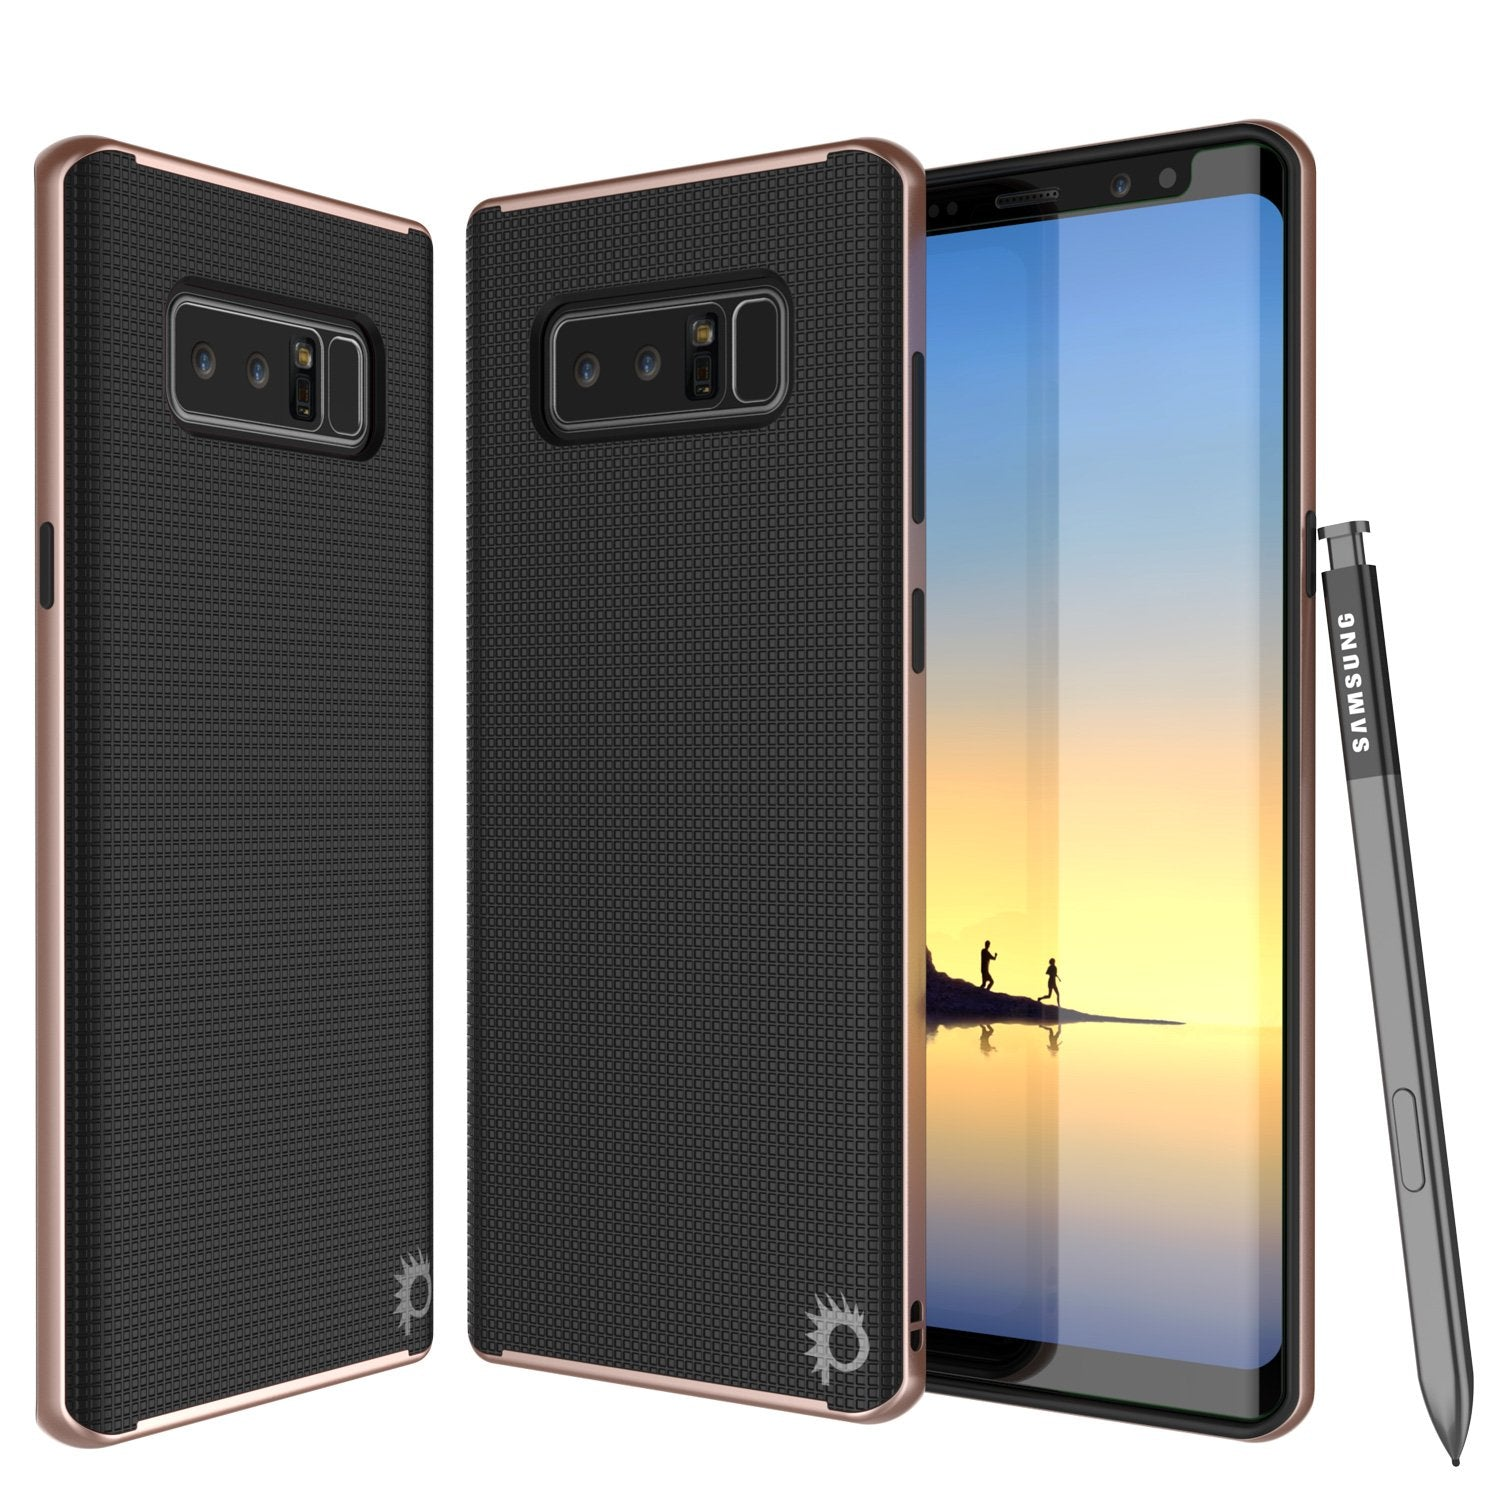 Galaxy Note 8 Case, PunkCase [Stealth Series] Hybrid 3-Piece Shockproof Dual Layer Cover [Non-Slip] [Soft TPU + PC Bumper] with PUNKSHIELD Screen Protector for Samsung Note 8 [Rose Gold]